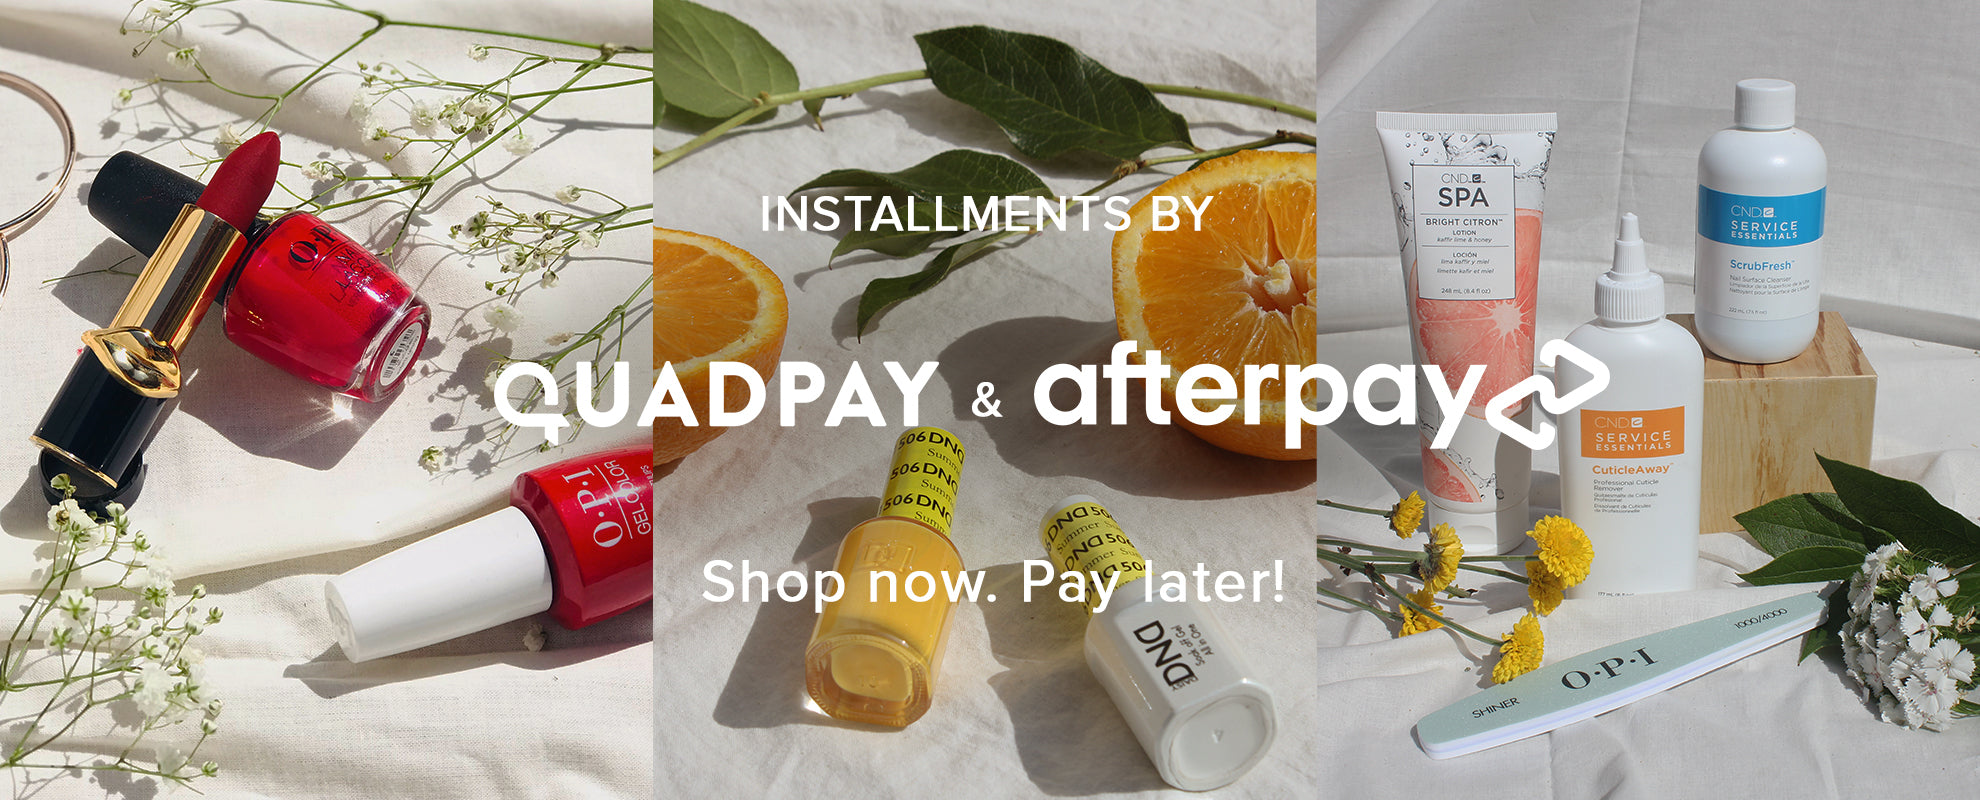 Shop Now Pay Later With Quadpay or Afterpay